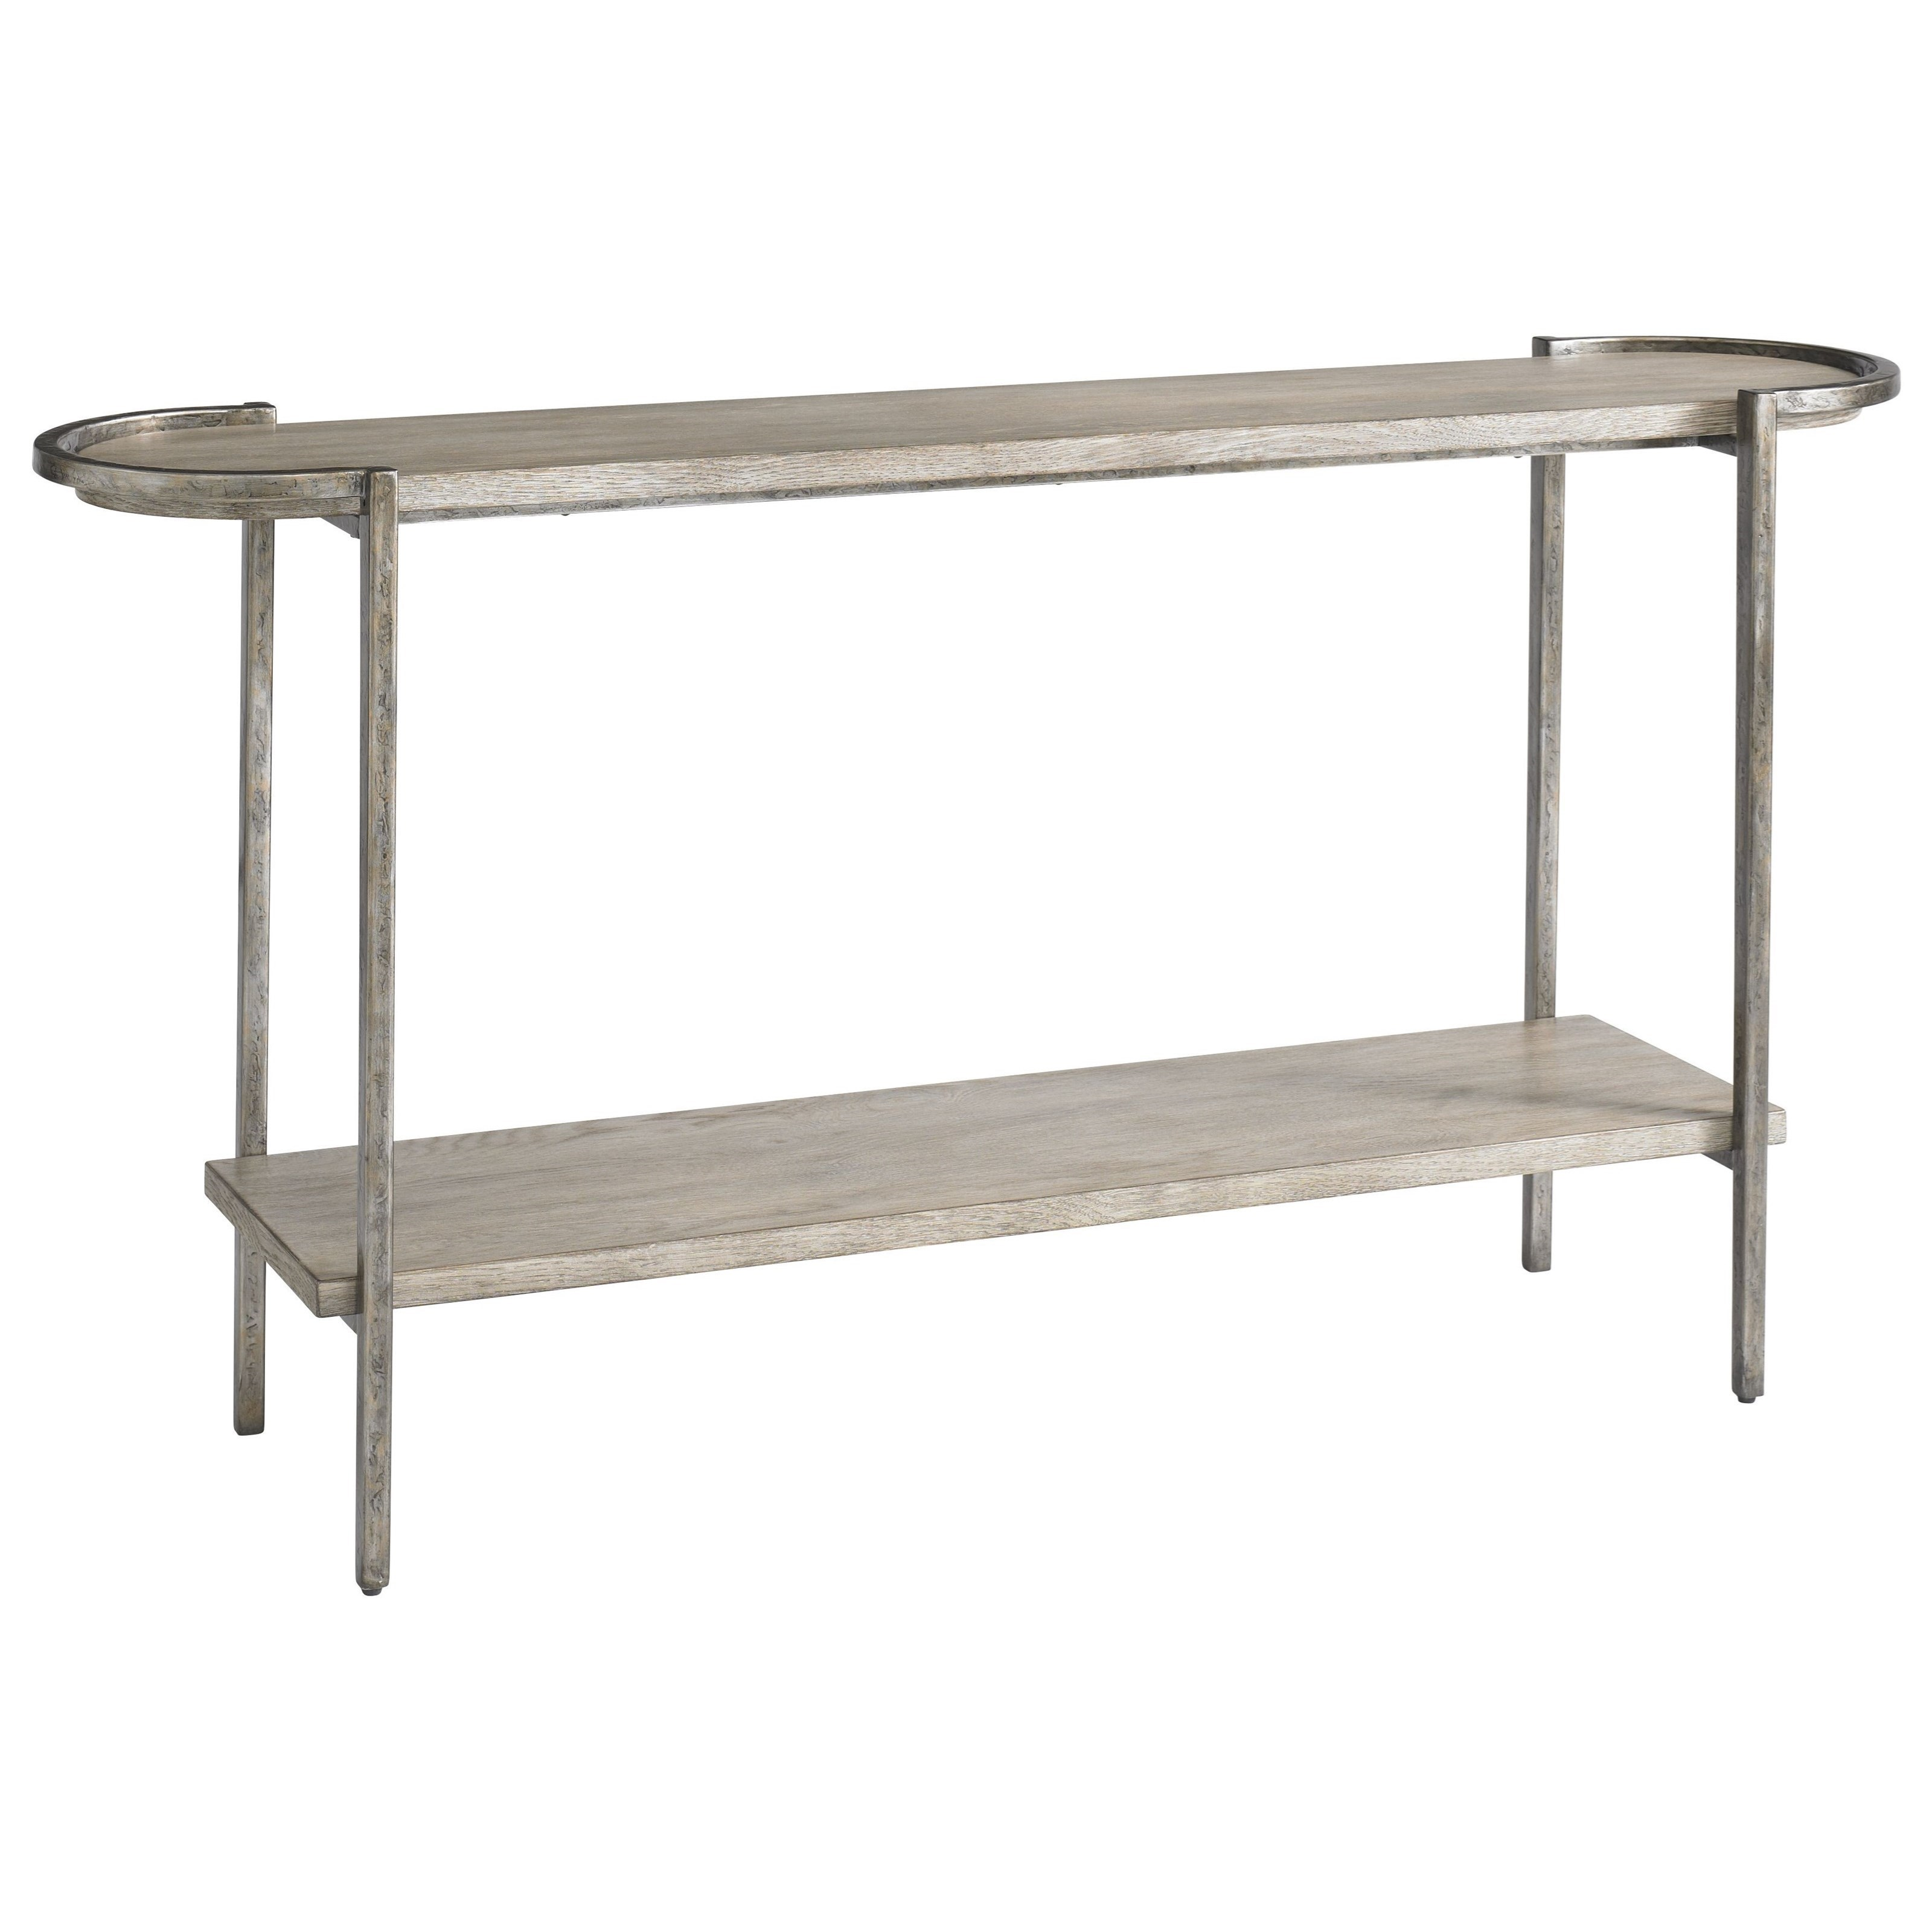 Chelsea Pier Console Table by Bassett at Bassett of Cool Springs